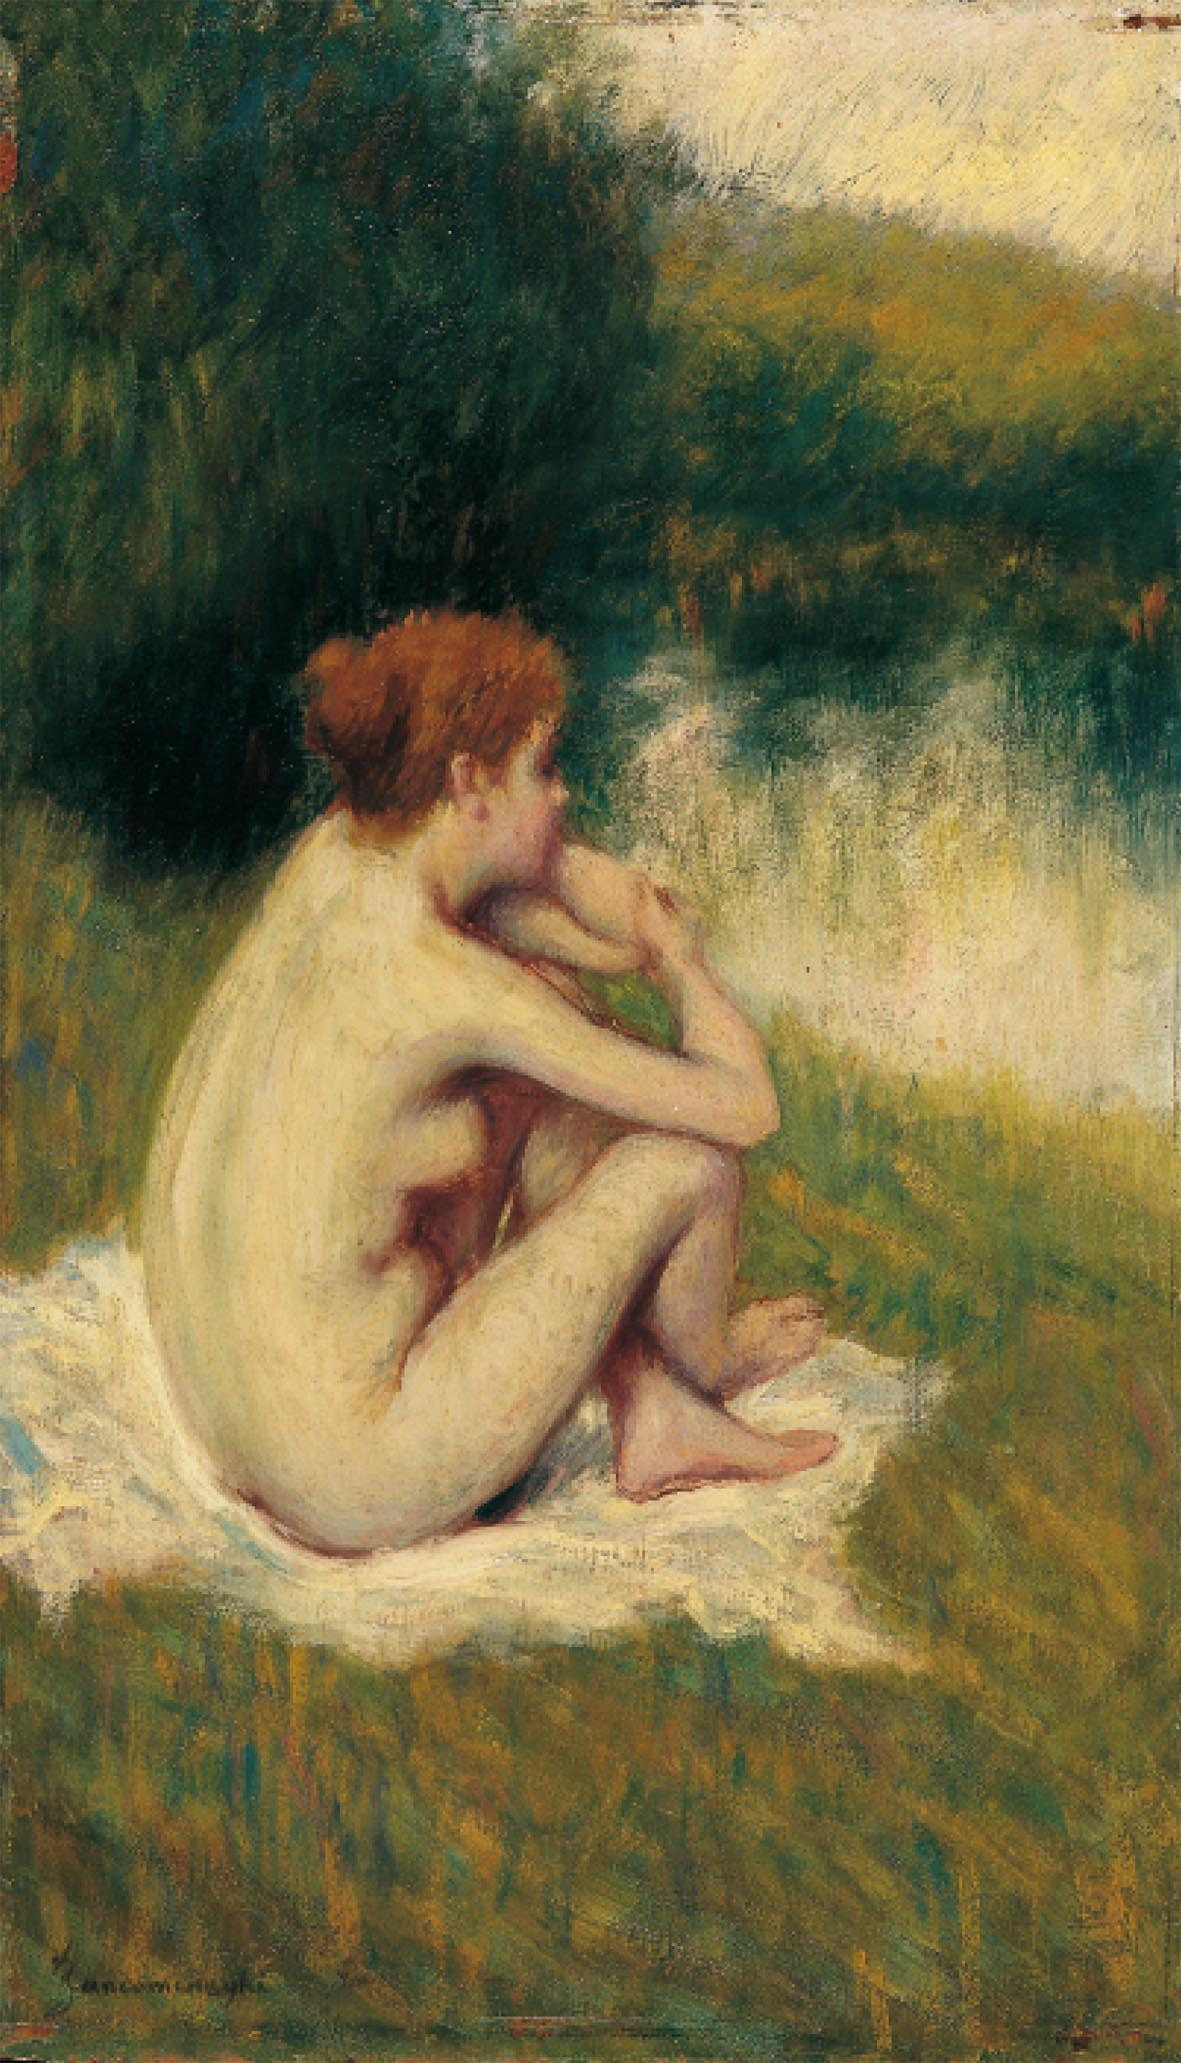 http://uploads2.wikipaintings.org/images/federico-zandomeneghi/after-bath.jpg